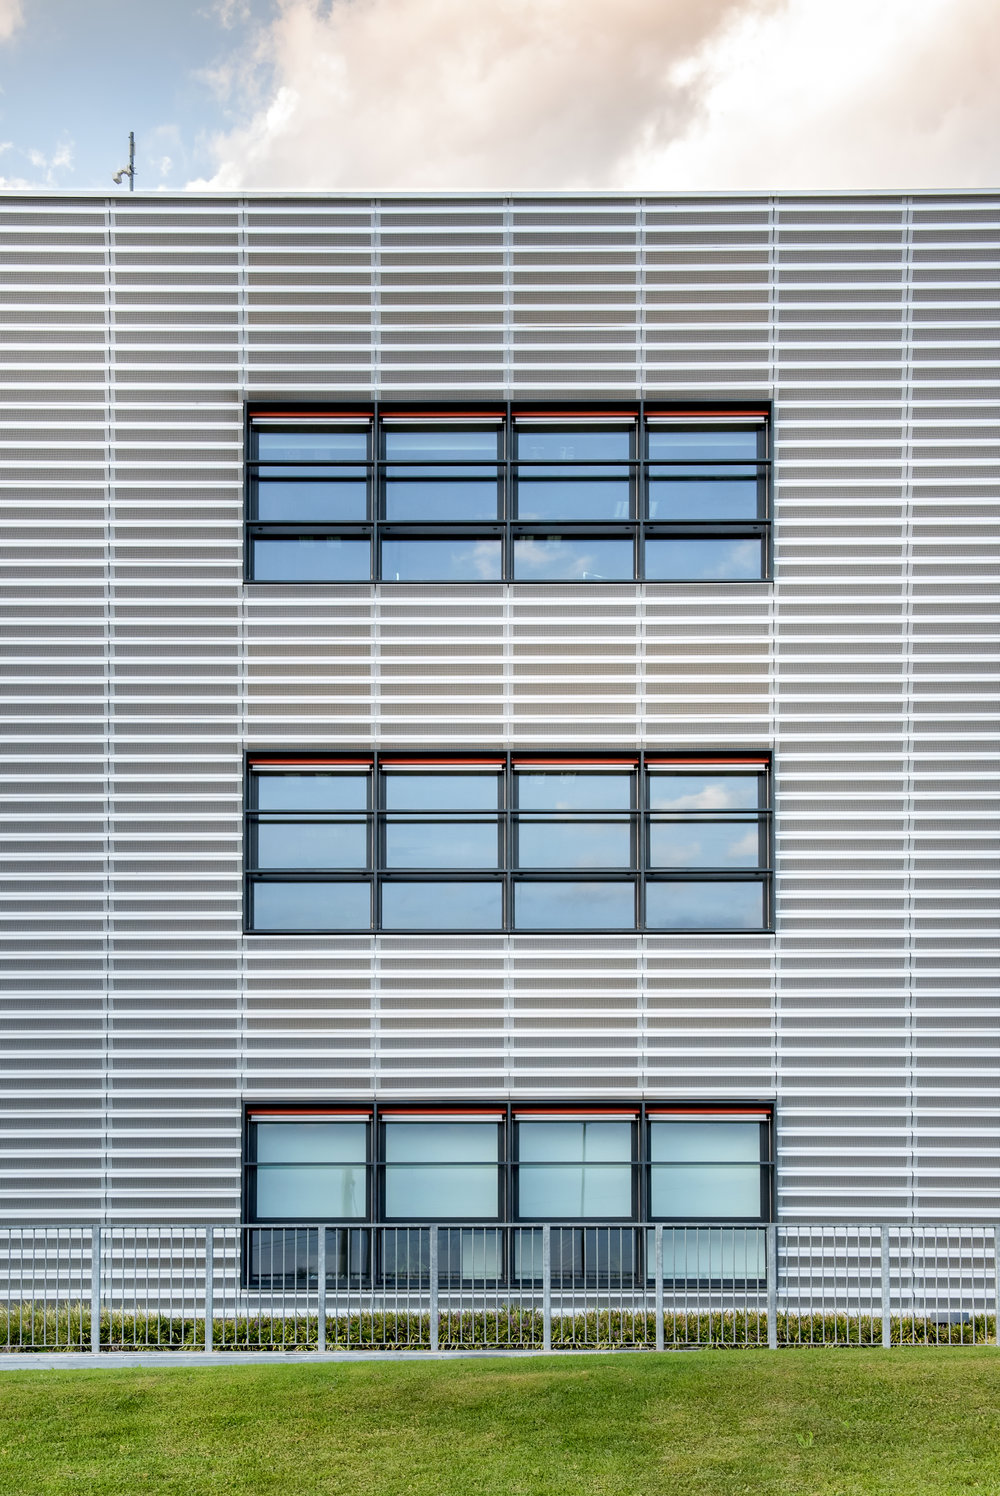 symmetrical-view-of-a-modern-commercial-building-5YB4SFW.jpg